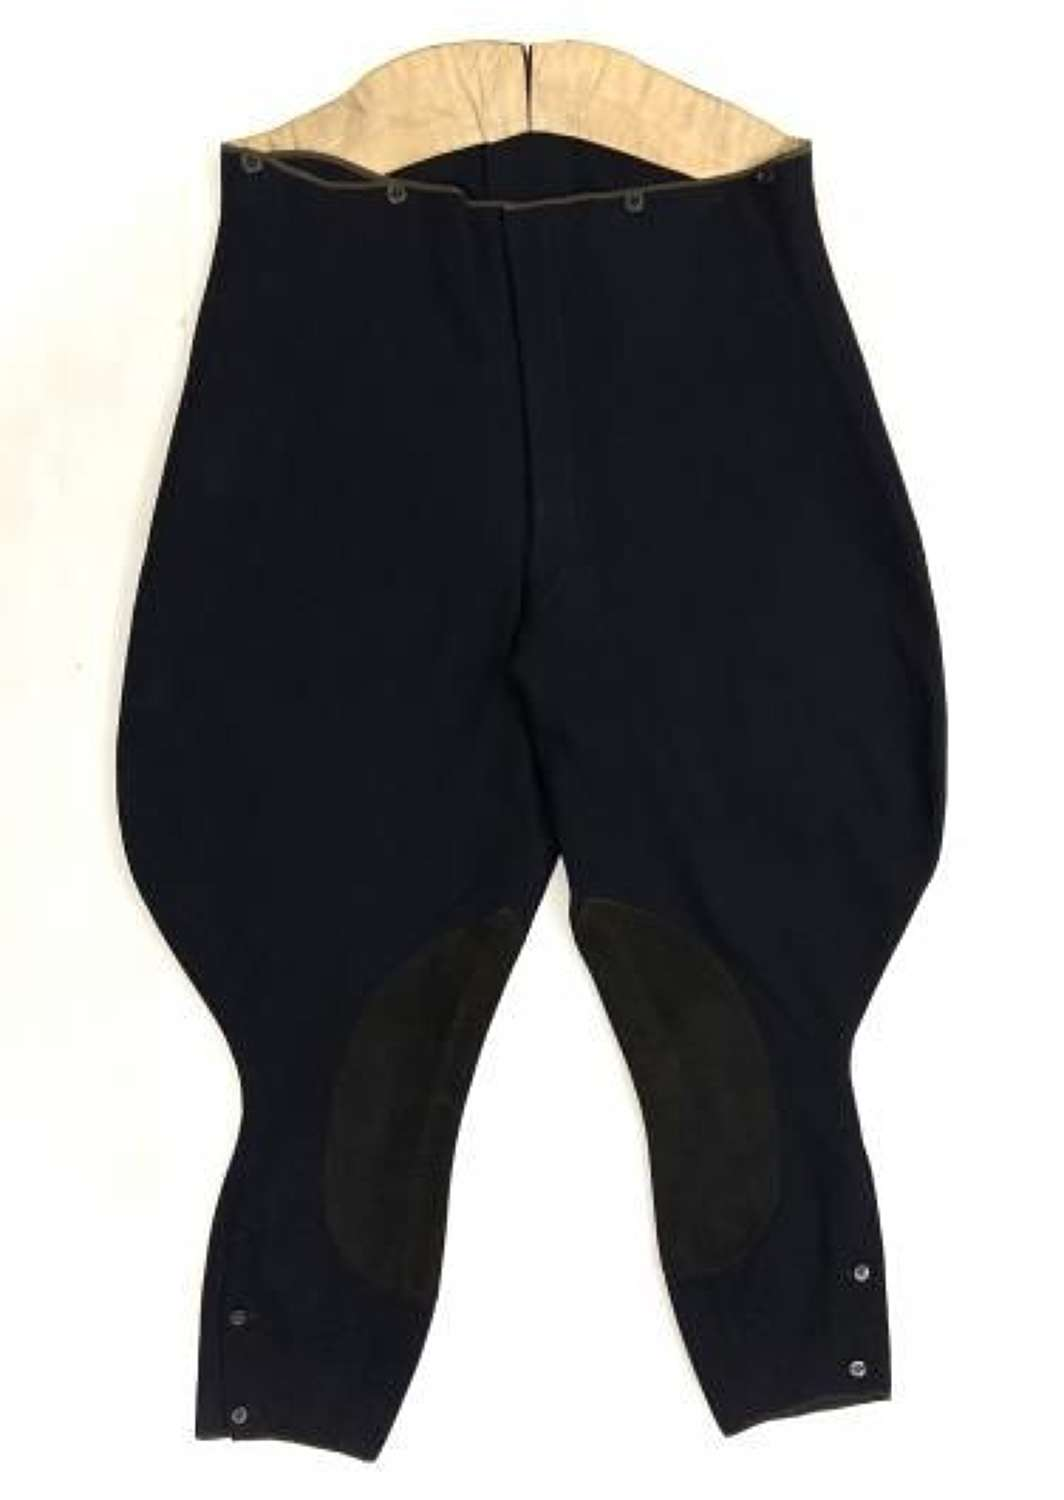 Original c.1920s British Army Officers No.1 Breeches by 'Bartels & Co'